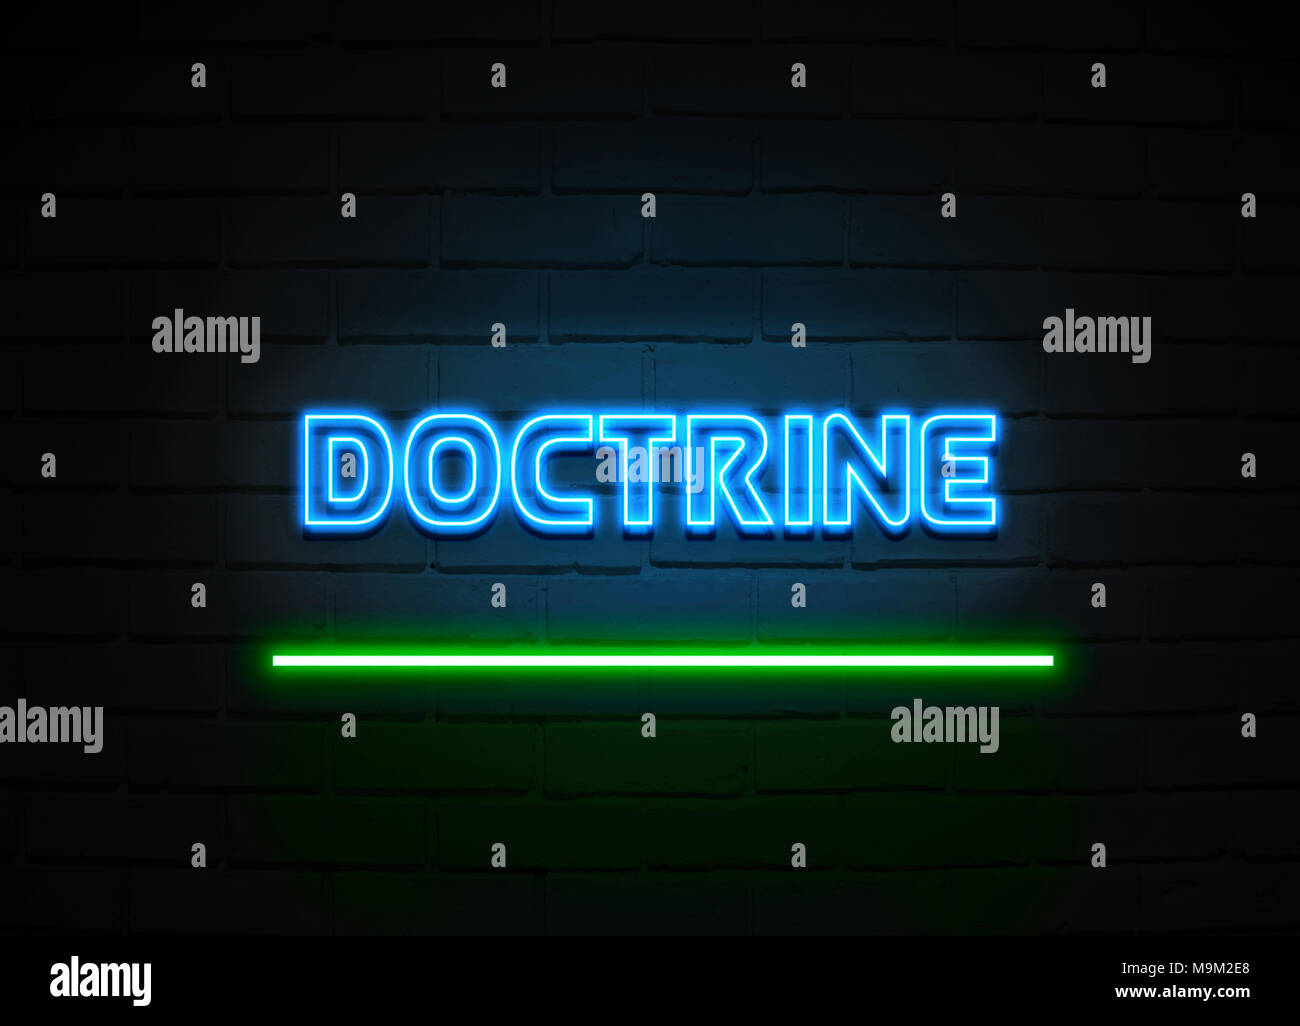 Doctrine neon sign - Glowing Neon Sign on brickwall wall - 3D rendered royalty free stock illustration. - Stock Image